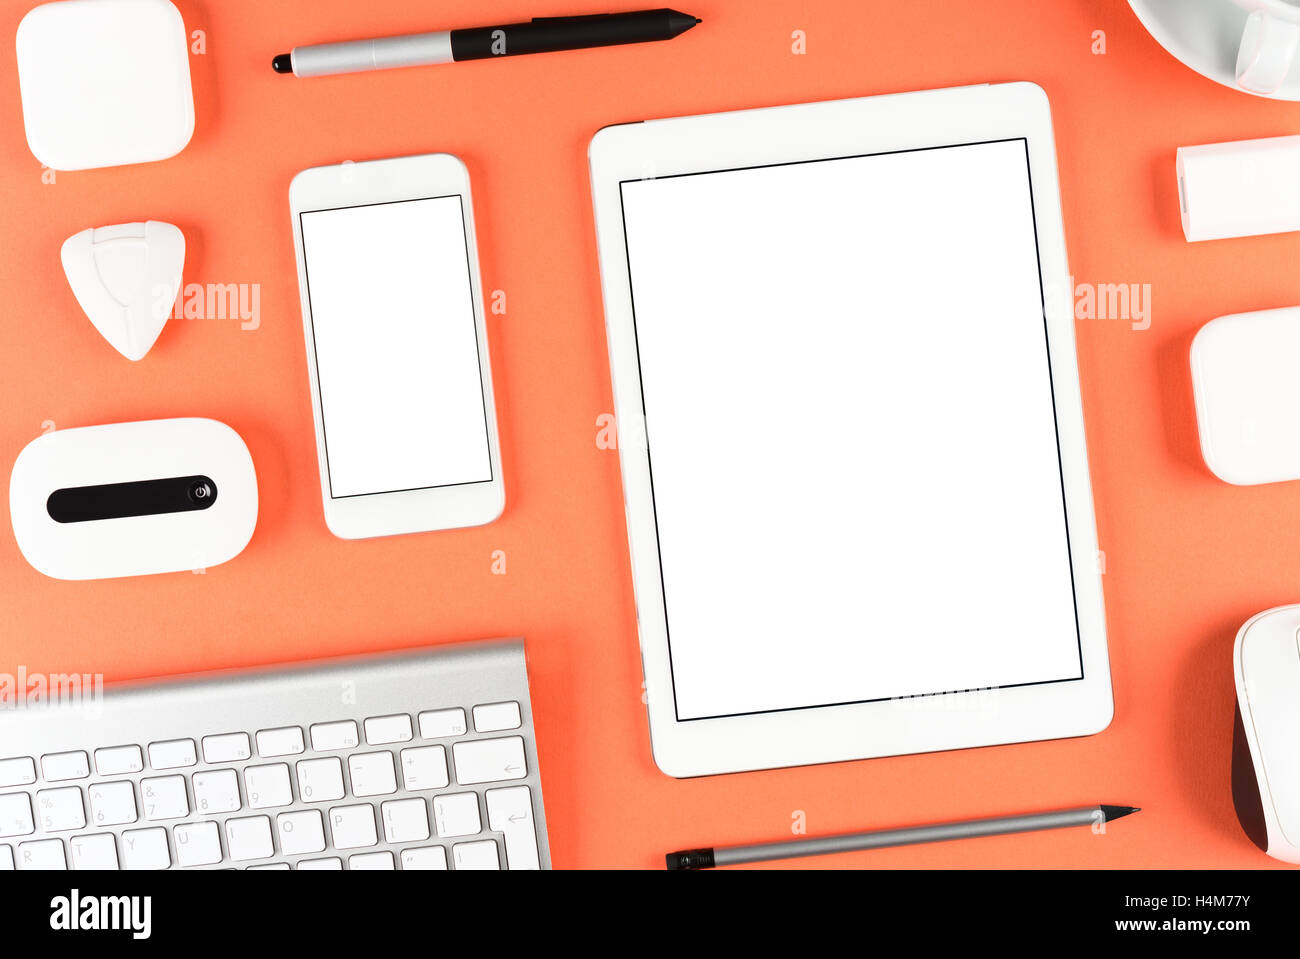 Responsive design: Keyboard, tablet and smartphone on red table Stock Photo